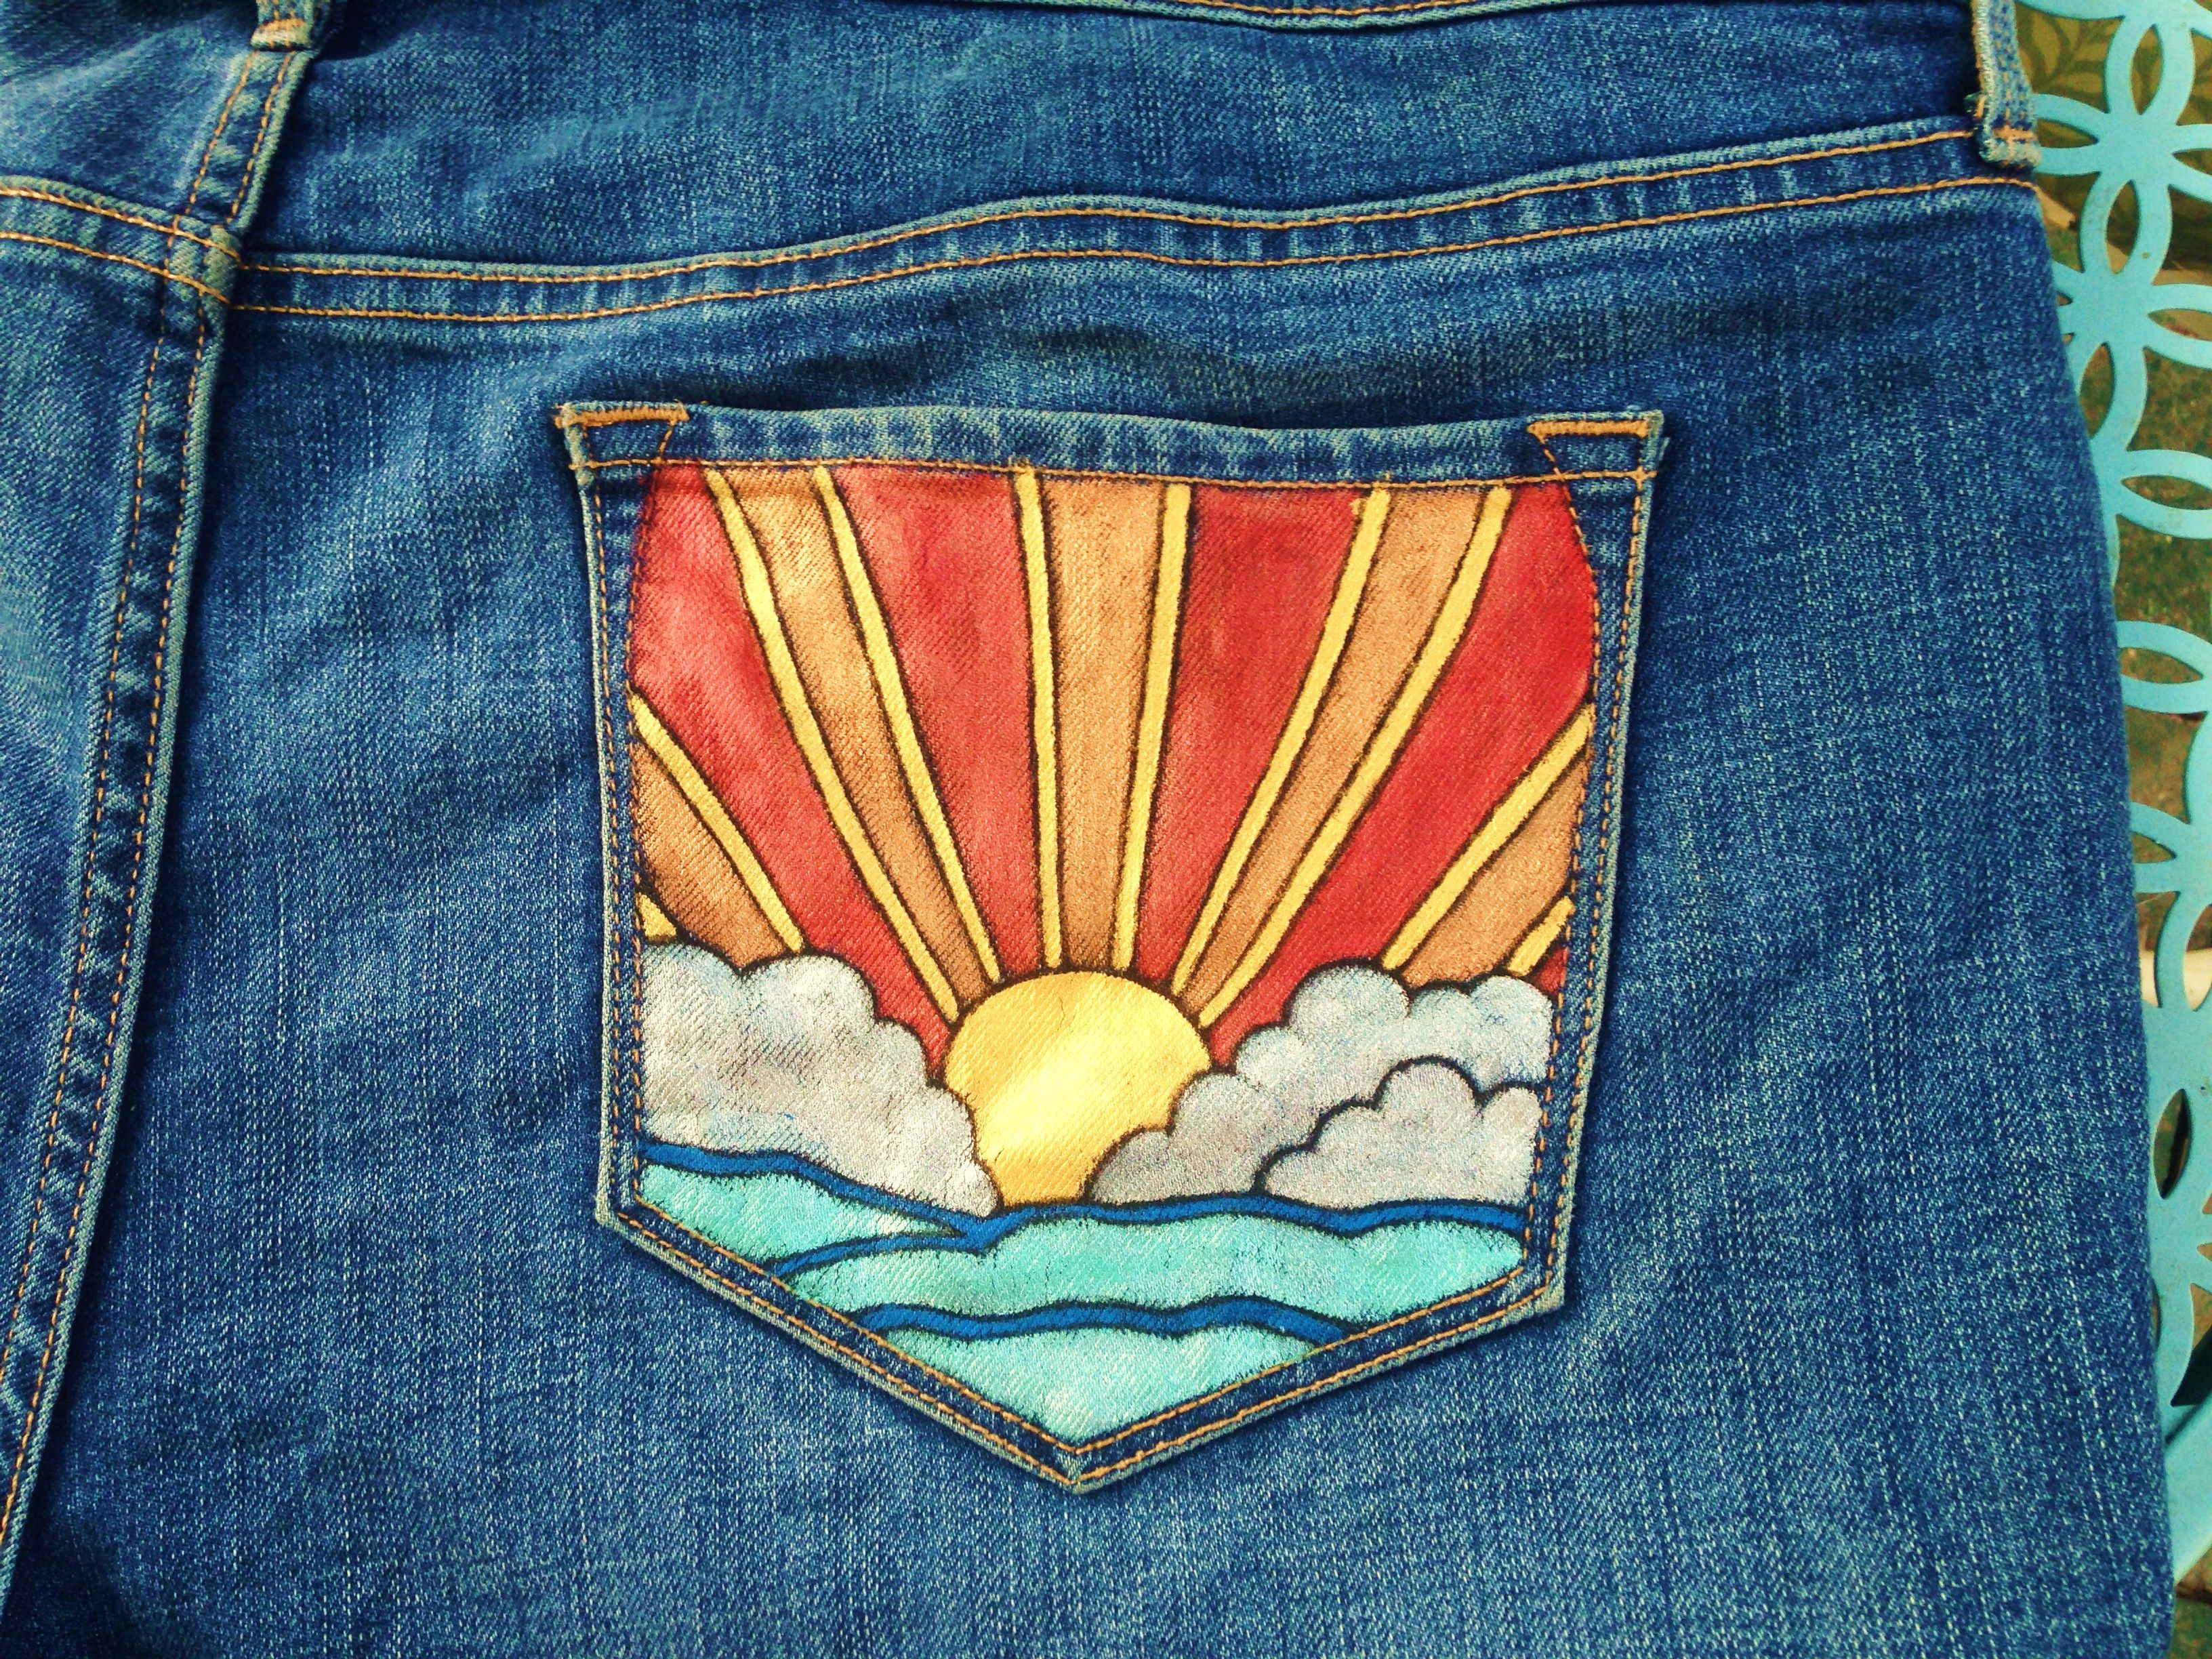 Sunset on the water painted on the back of a pair of jeans